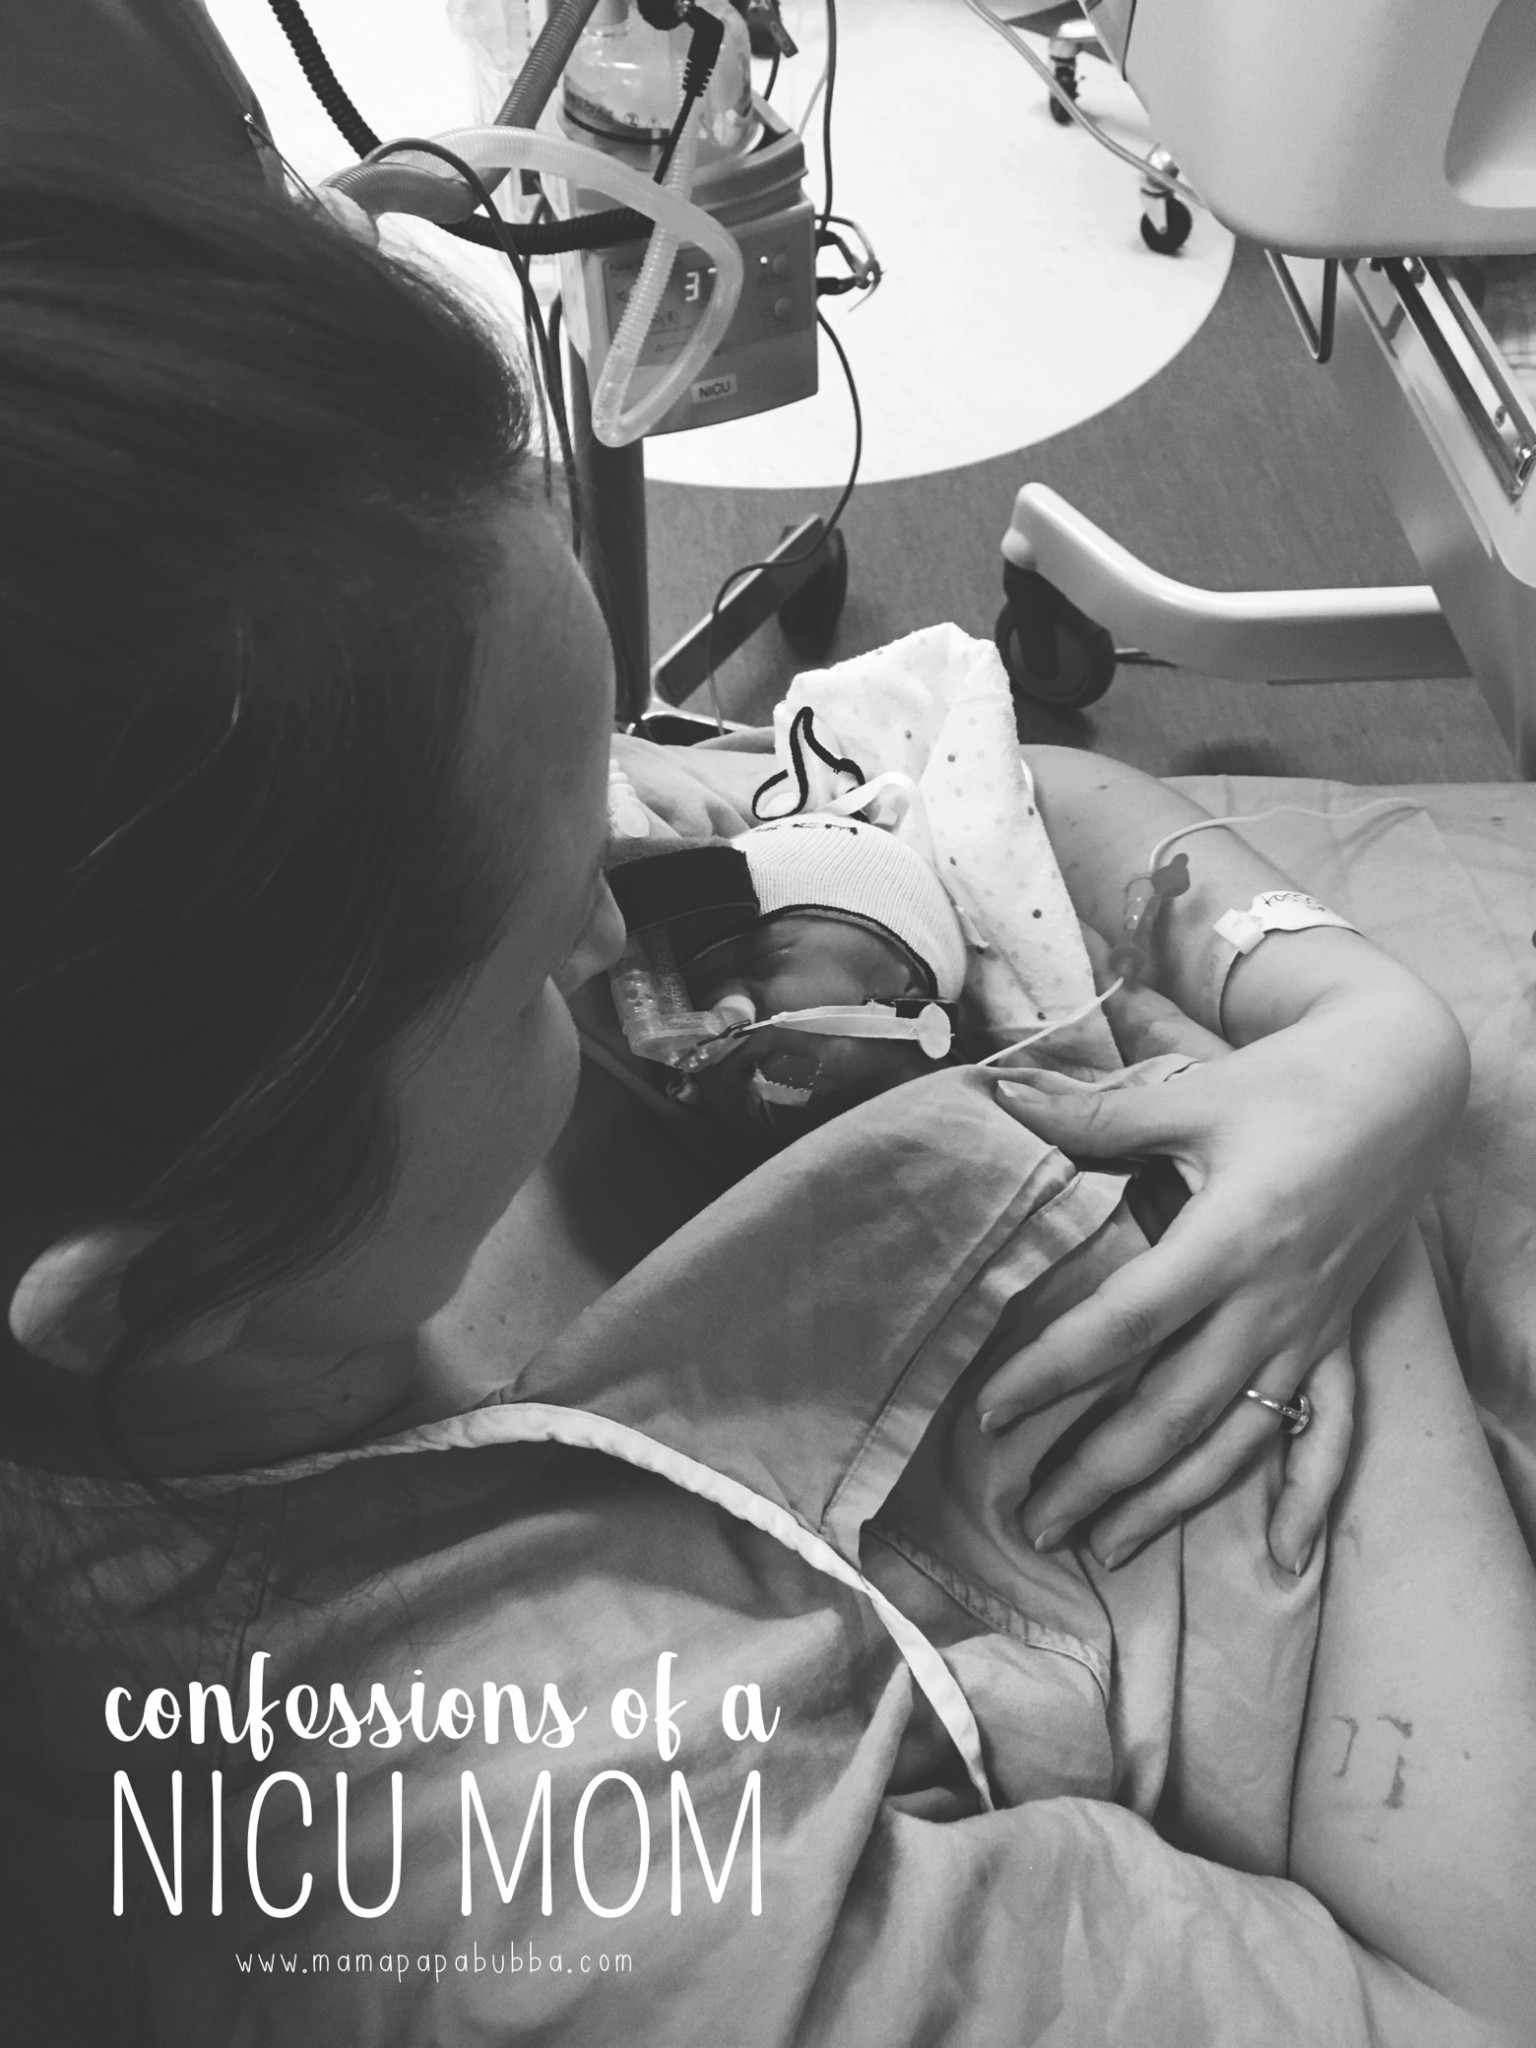 Confessions of a NICU Mom | Mama Papa Bubba